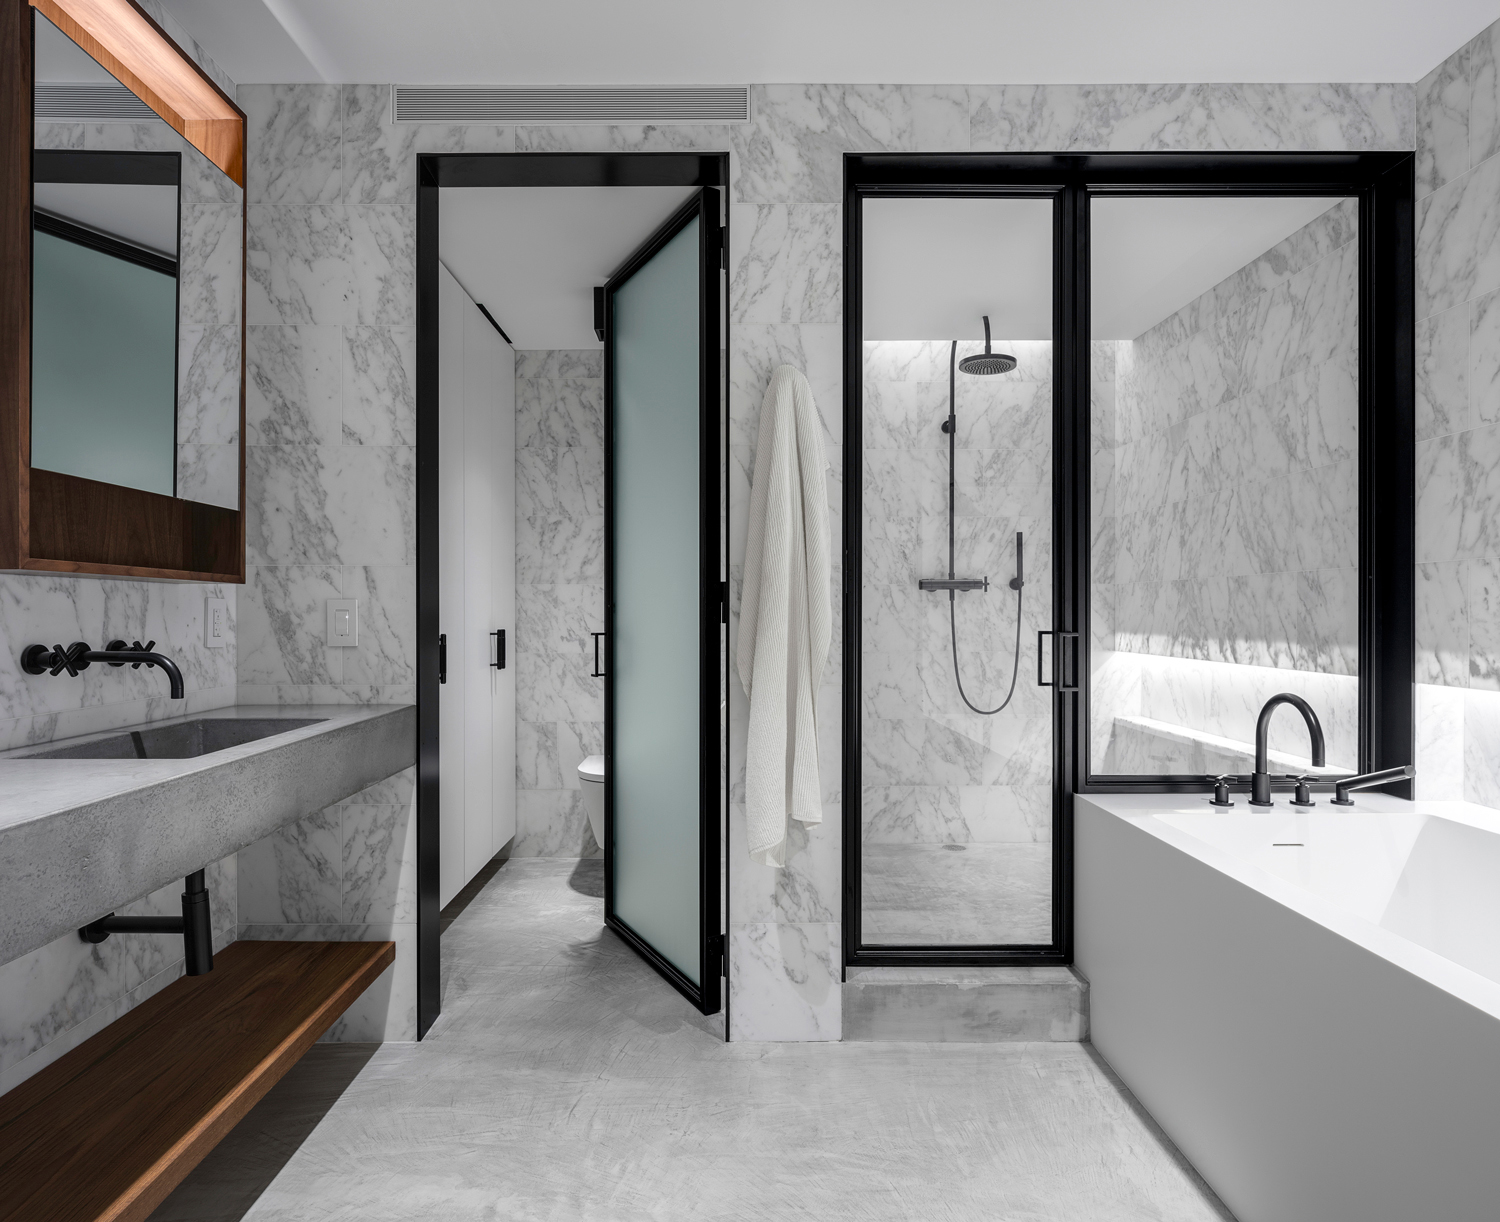 Architectural Photography New York RAAD Studio Master Bath